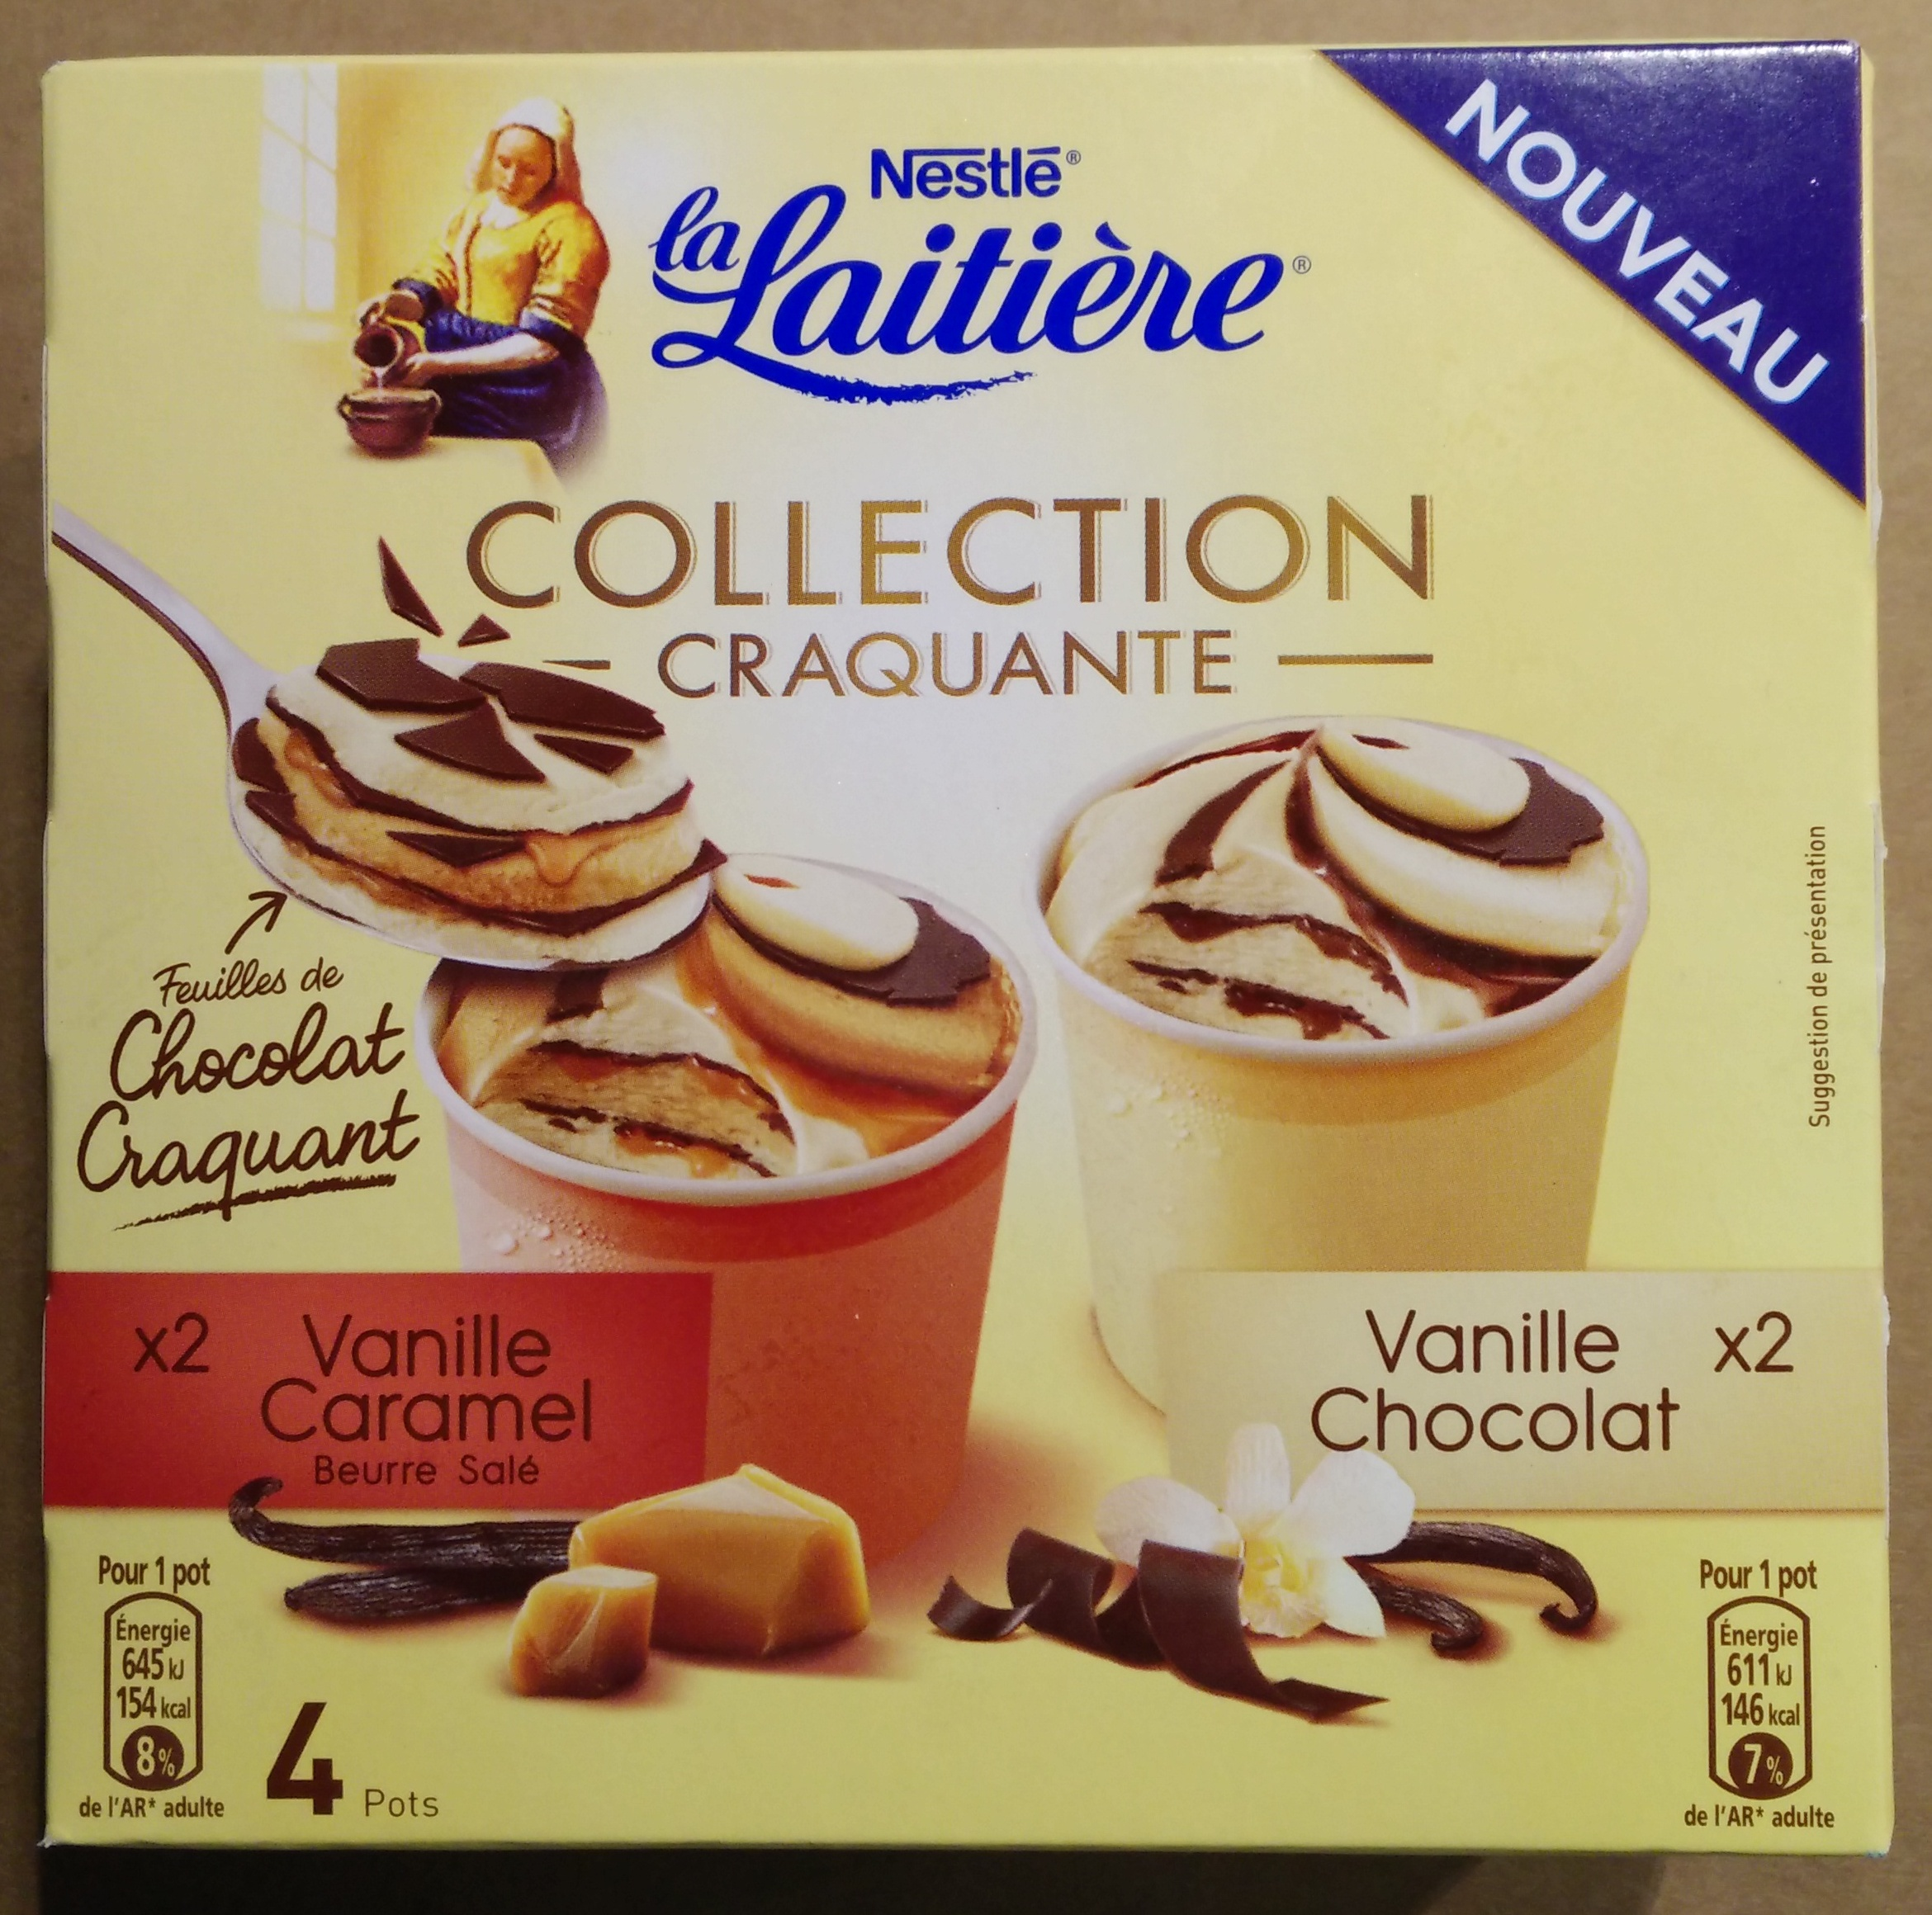 glaces vanille caramel beurre sal 233 vanille chocolat collection craquante nestl 233 234 g